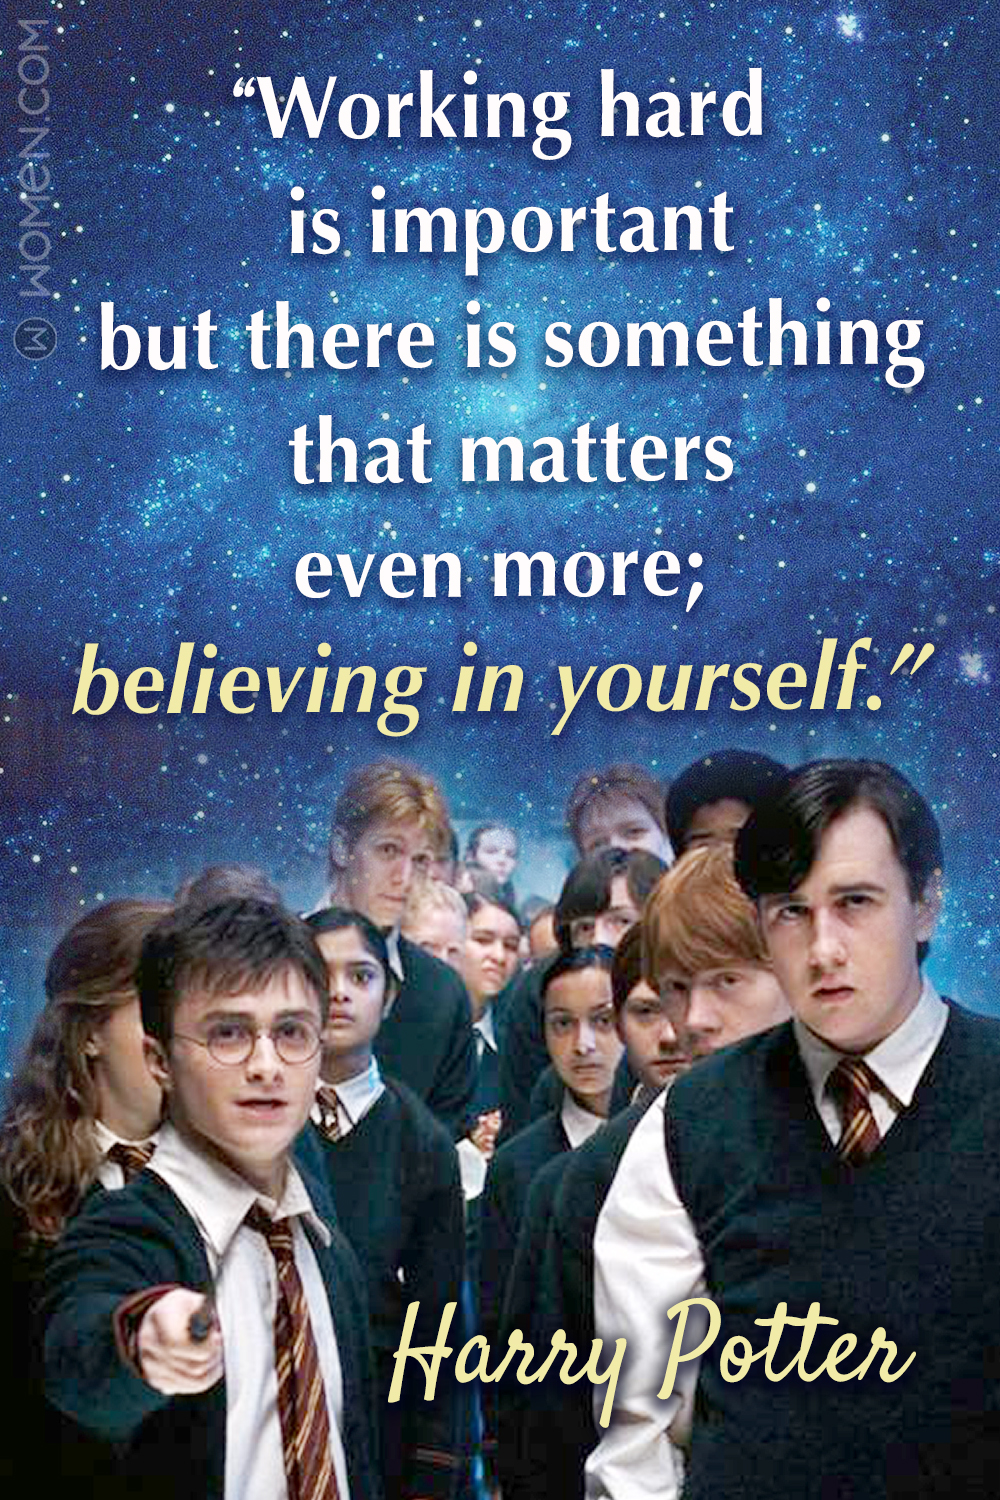 Every Wizard Should Live By These 15 Harry Potter Quotes, Inspirational Harry Potter Quotes, potter inspo quotes